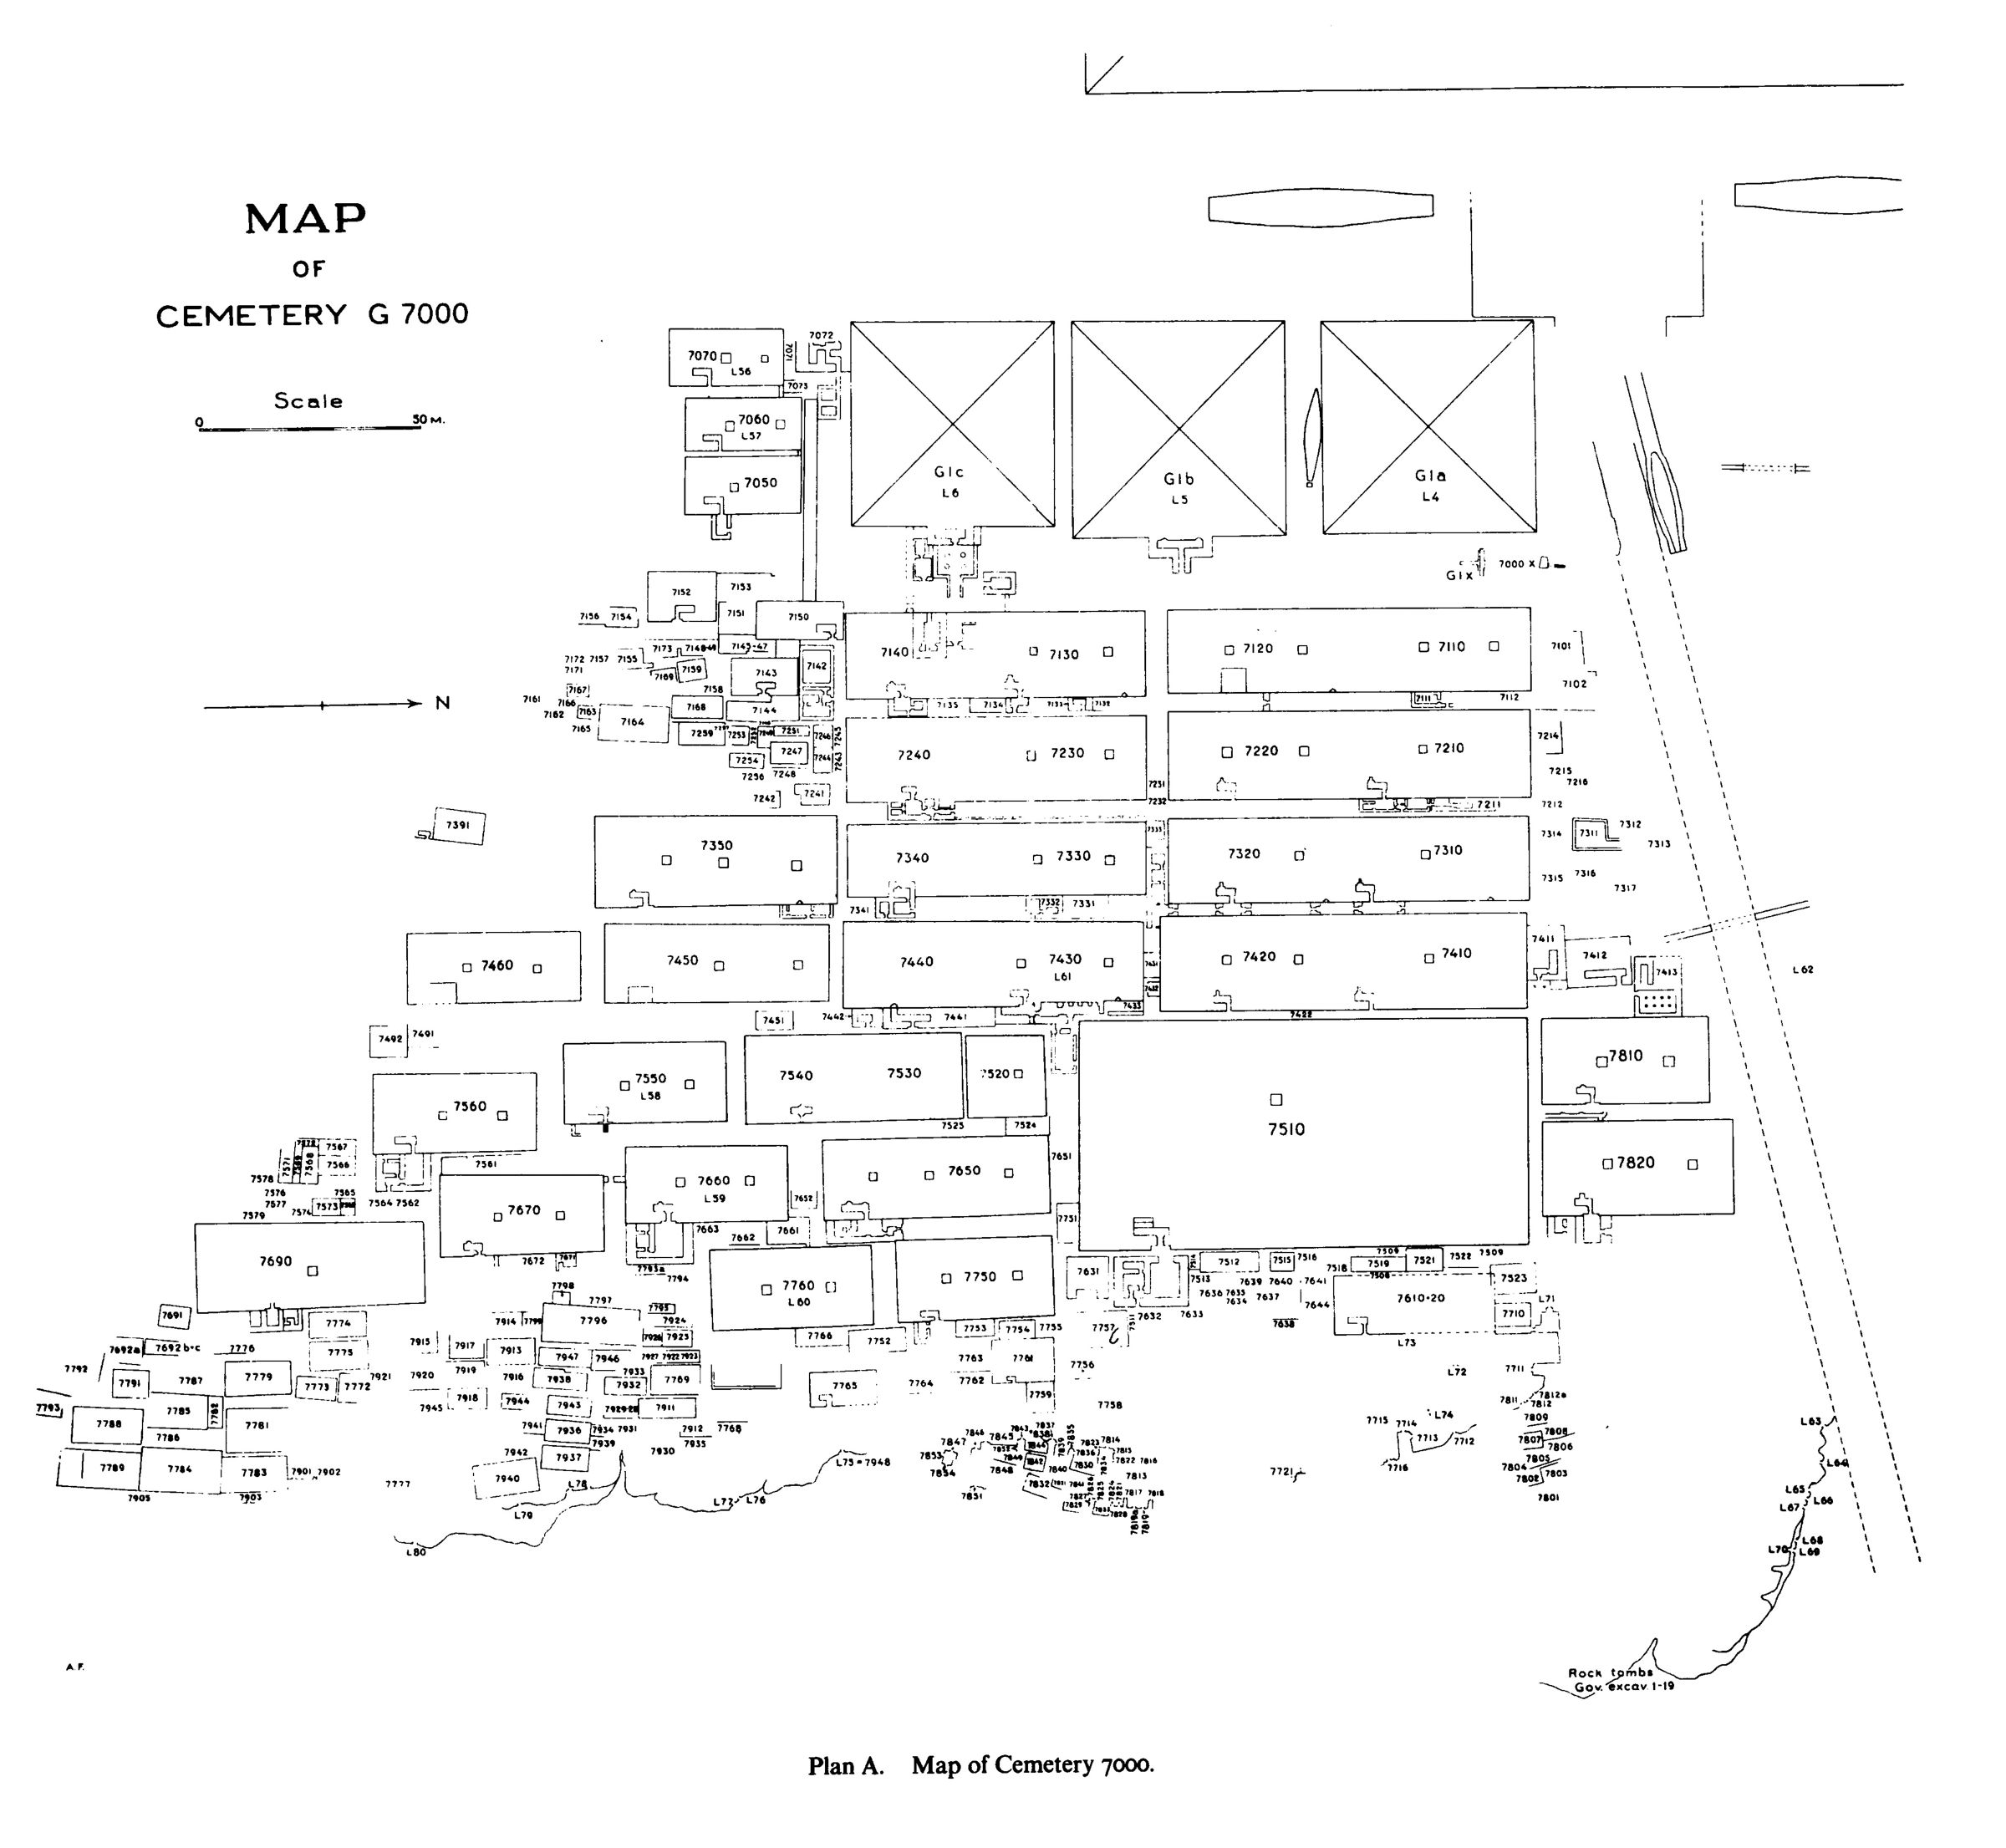 Maps and plans: Overall plan of Cemetery G 7000